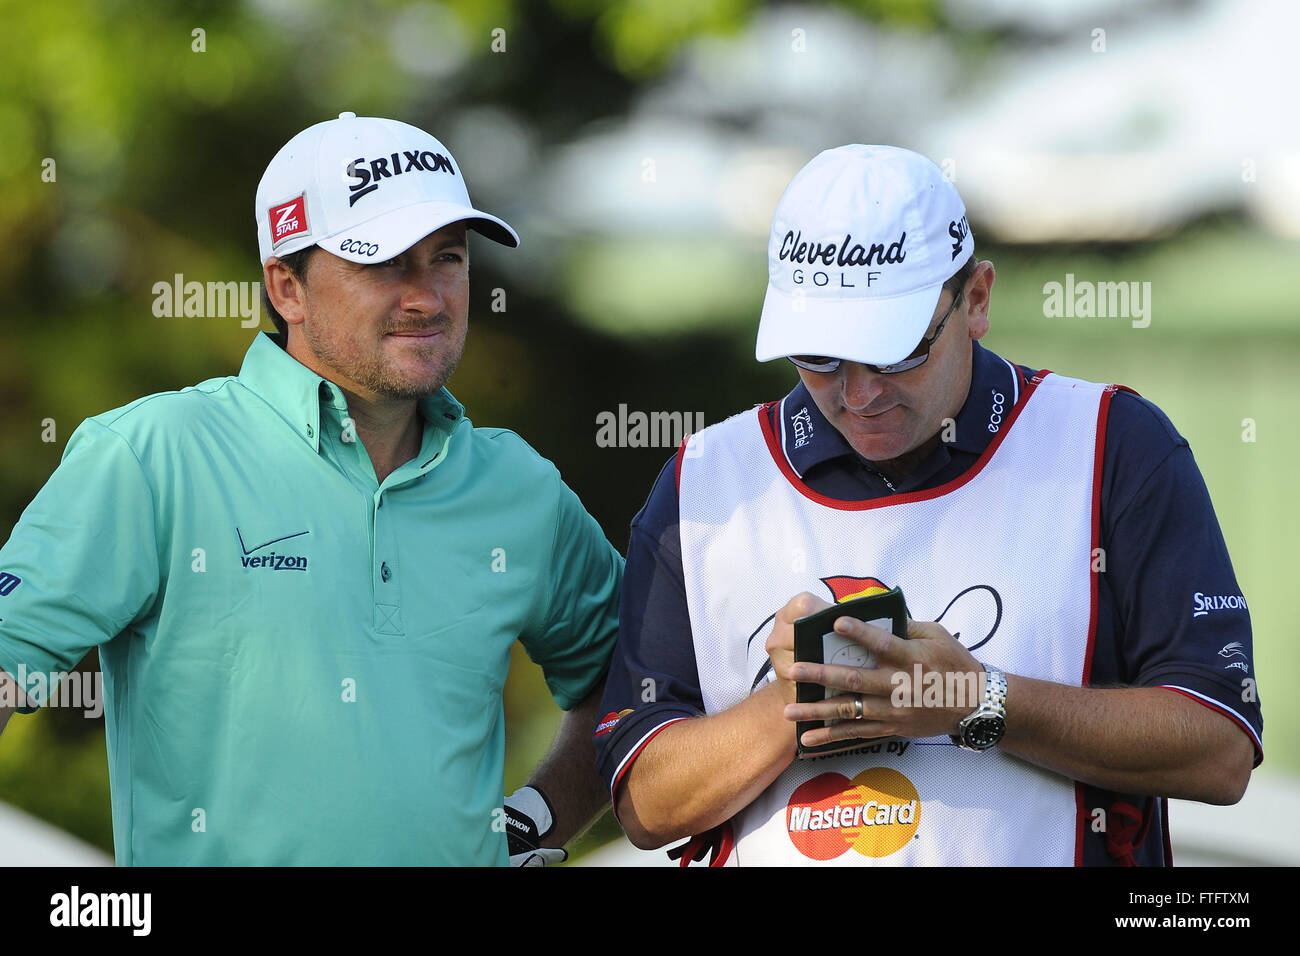 23rd Mar, 2012. Graeme McDowell during the second